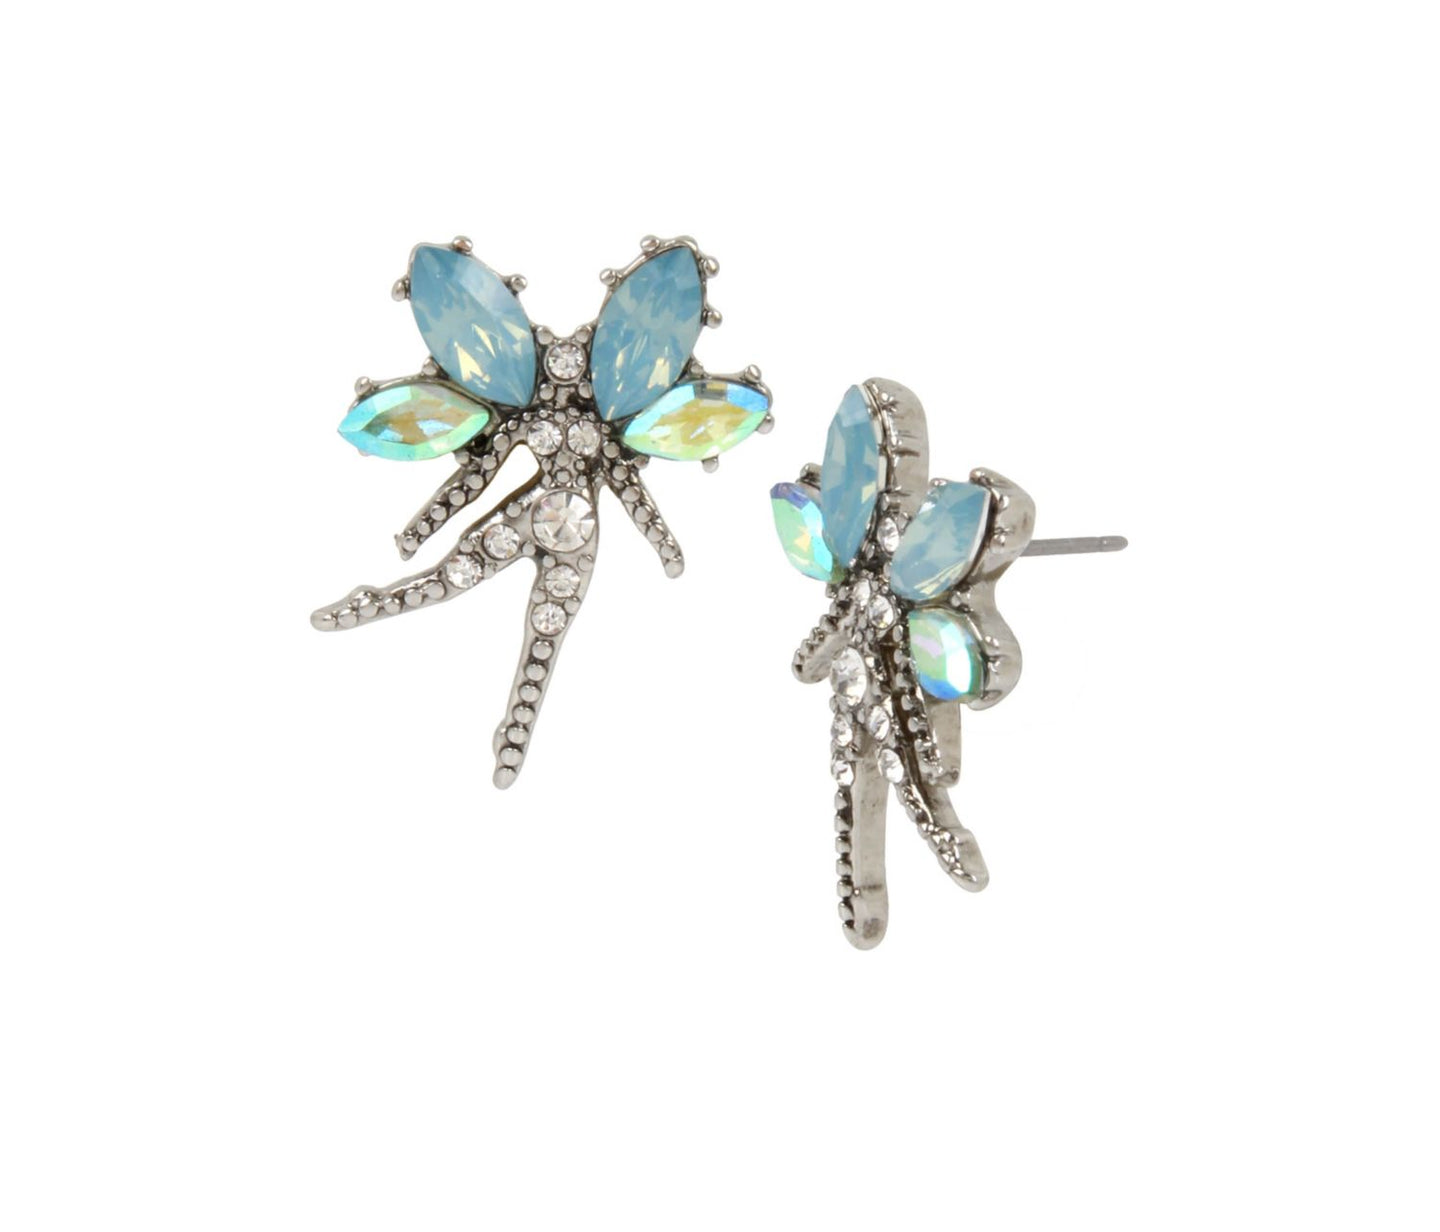 FAIRYTALE DREAMS FAIRY STUD EARRINGS BLUE - JEWELRY - Betsey Johnson